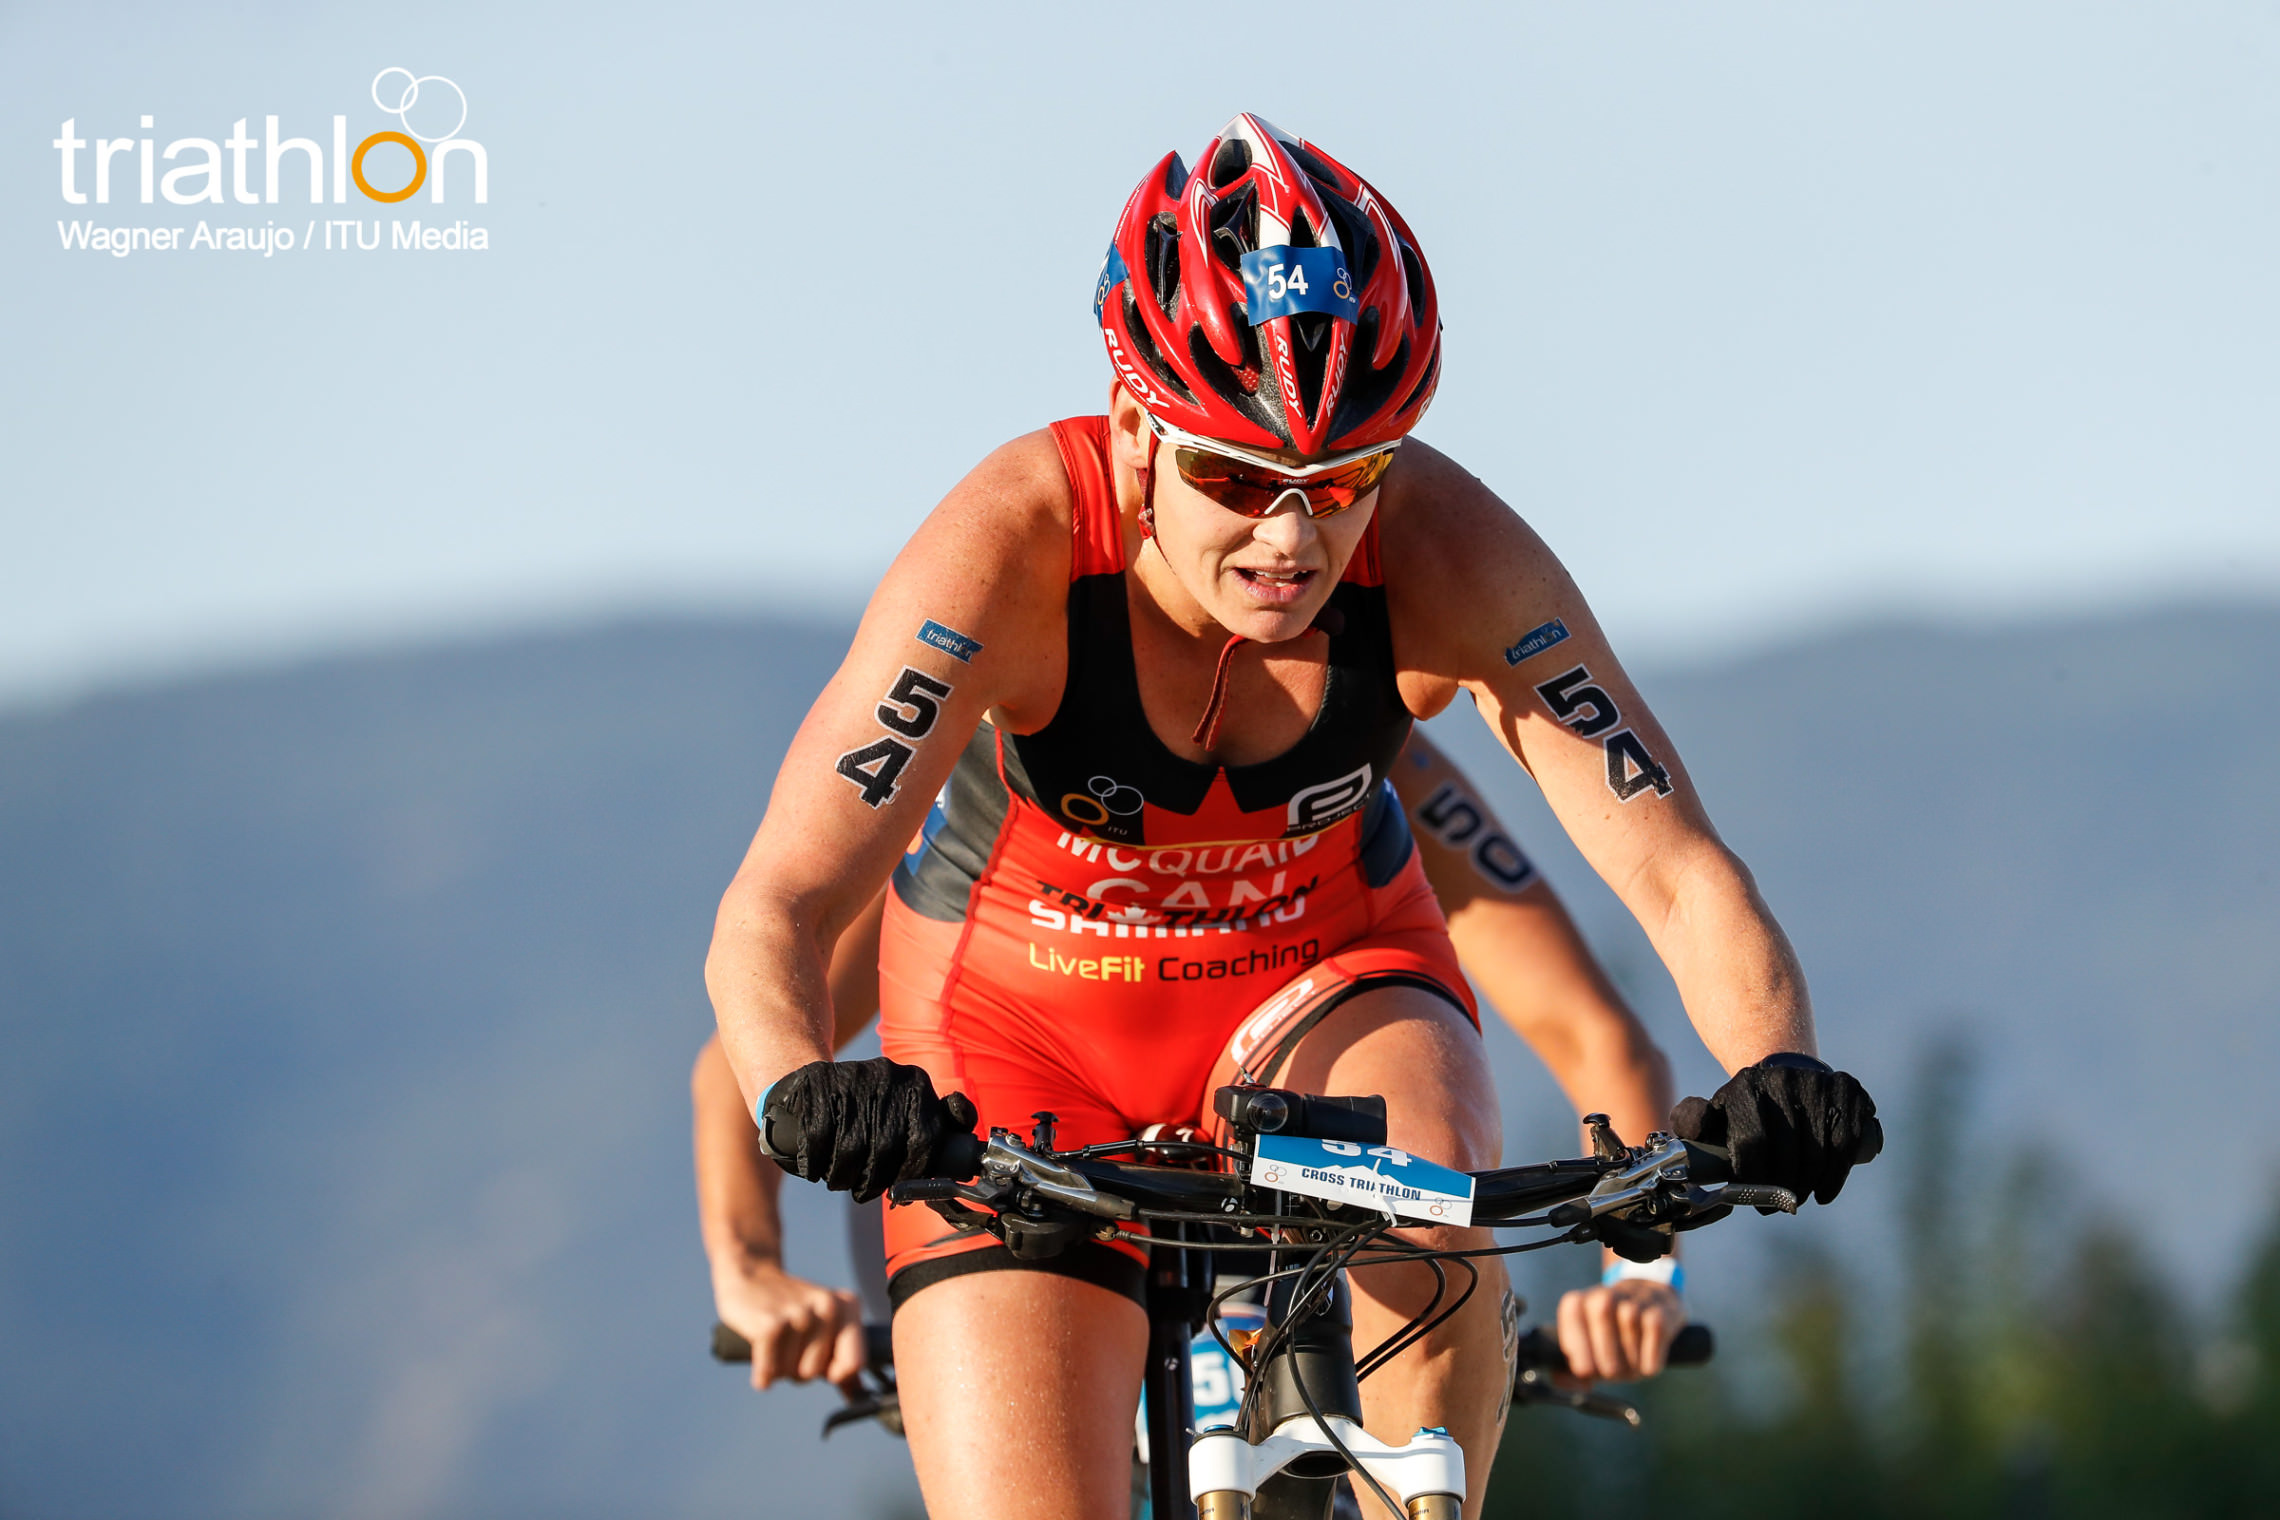 Cycling at the ITU Cross Triathlon World Championship